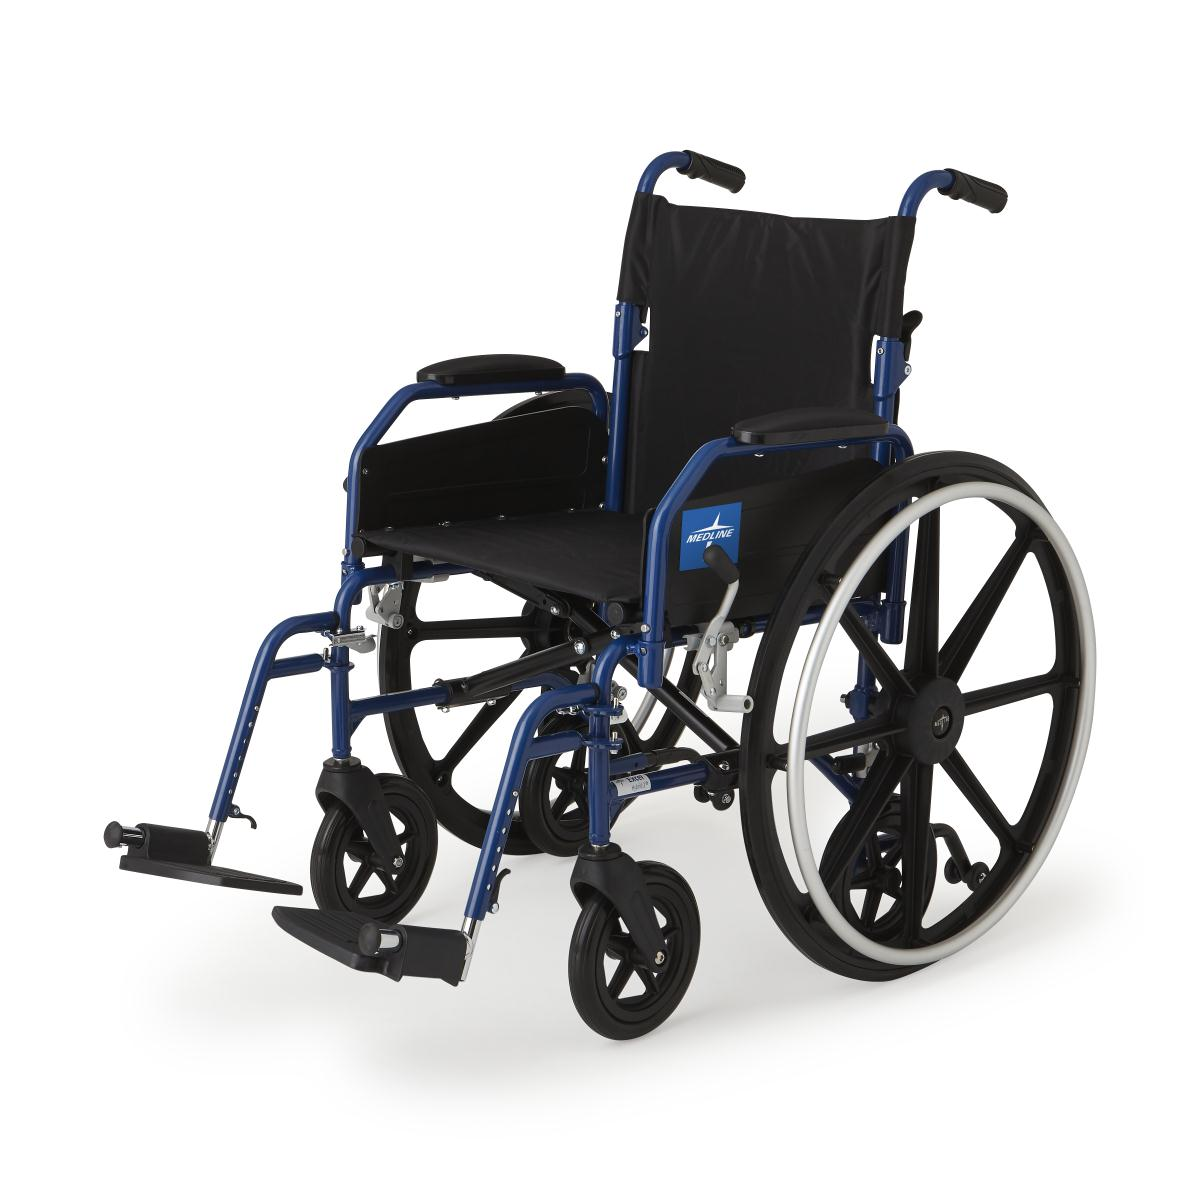 Hybrid 2 Transport Wheelchair Chair with Swing-Away Leg Rests